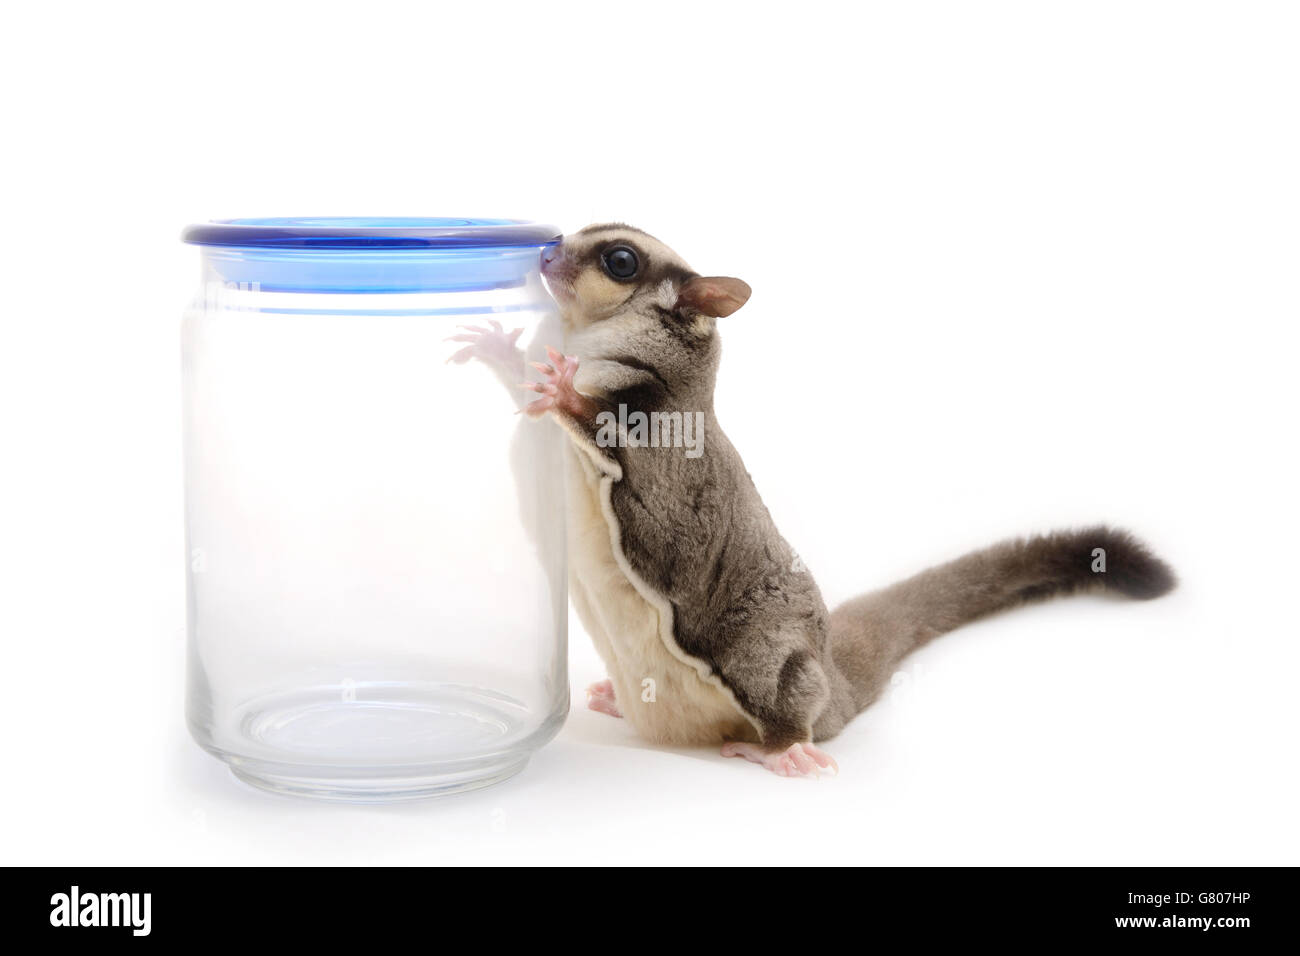 Sugarglider finding something from glass bottle on white background. - Stock Image